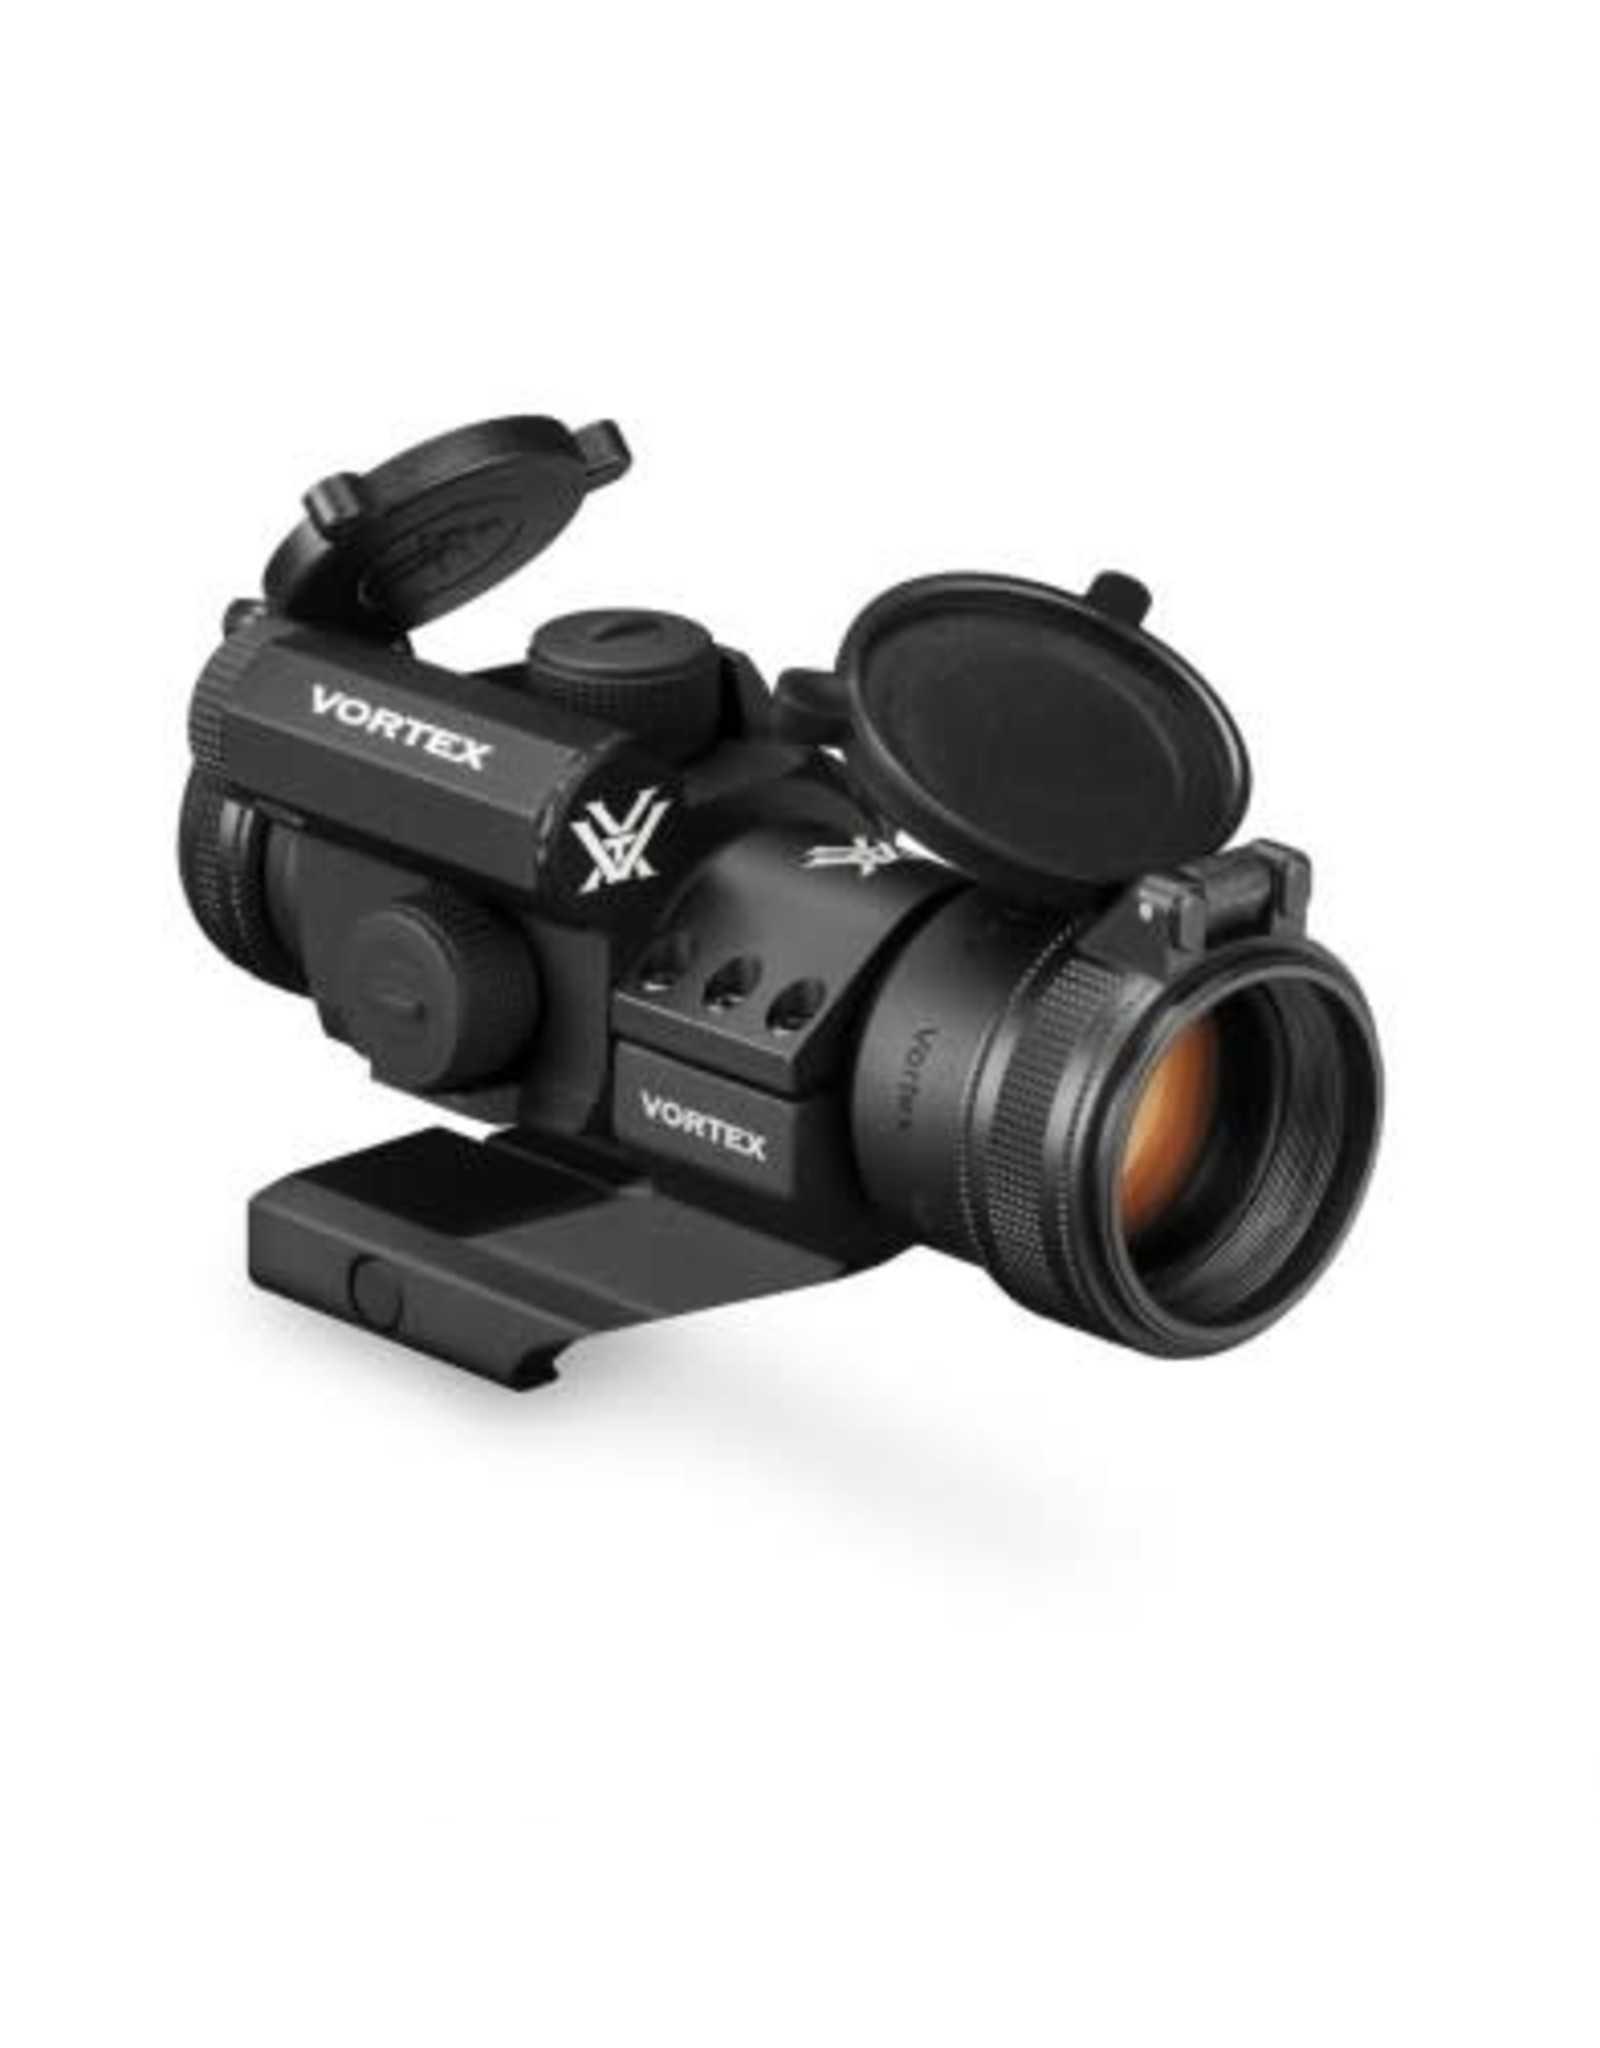 Vortex Optics VORTEX STRIKEFIRE II RED DOT 4 MOA RED/GREEN DOT VT-SF-RG-501